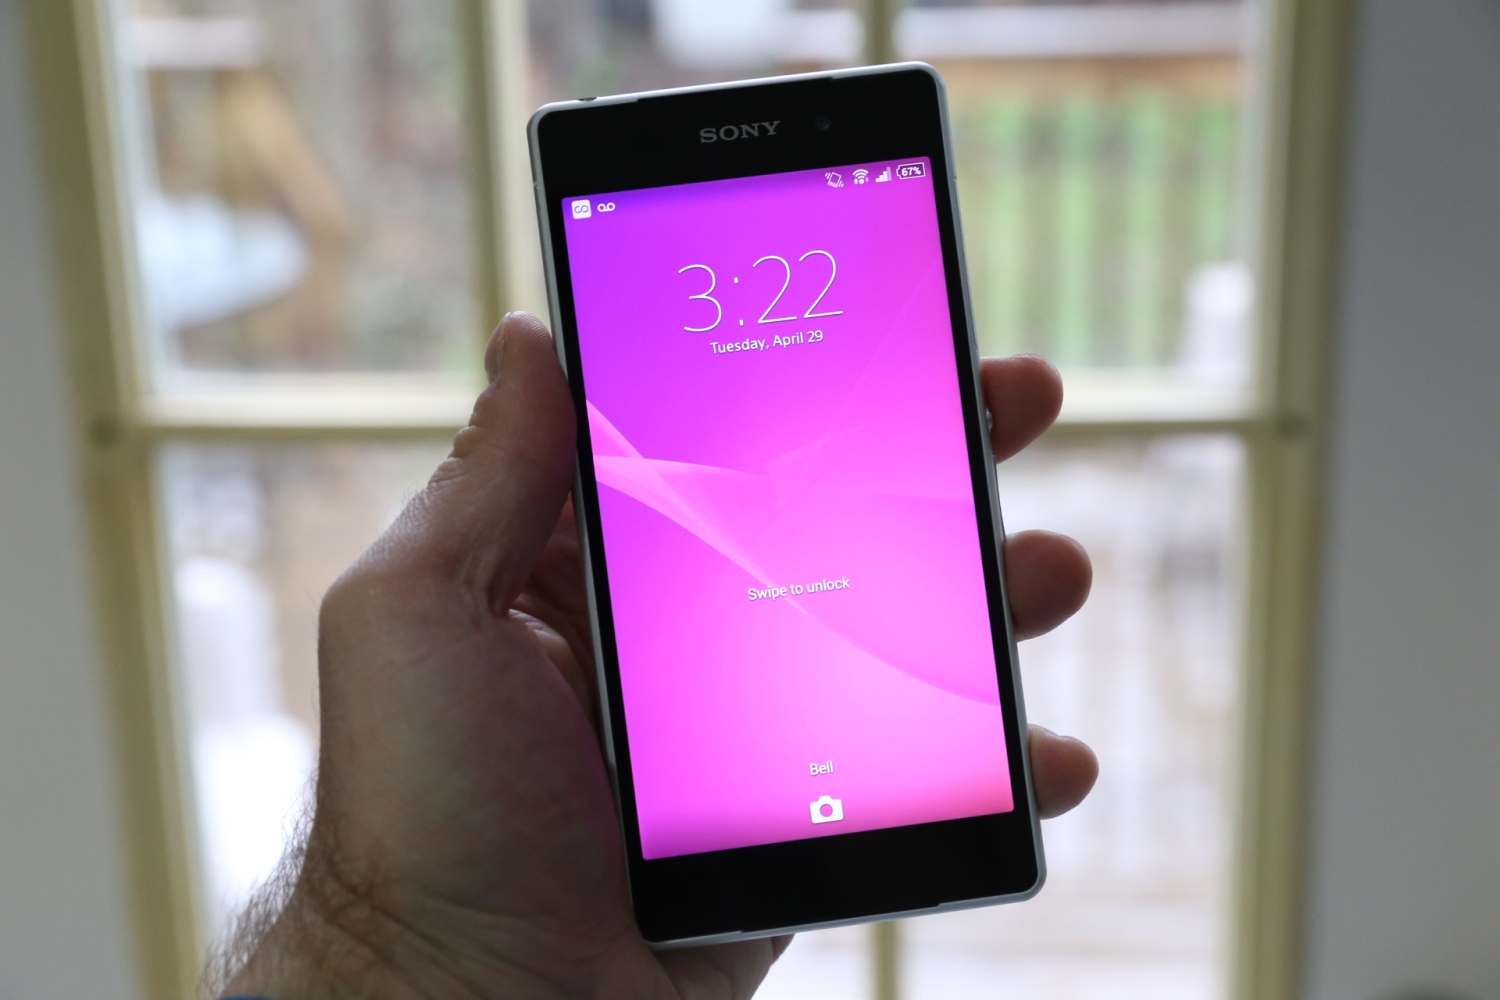 Sony Xperia Z2 Review: A Waterproof Android Smartphone That